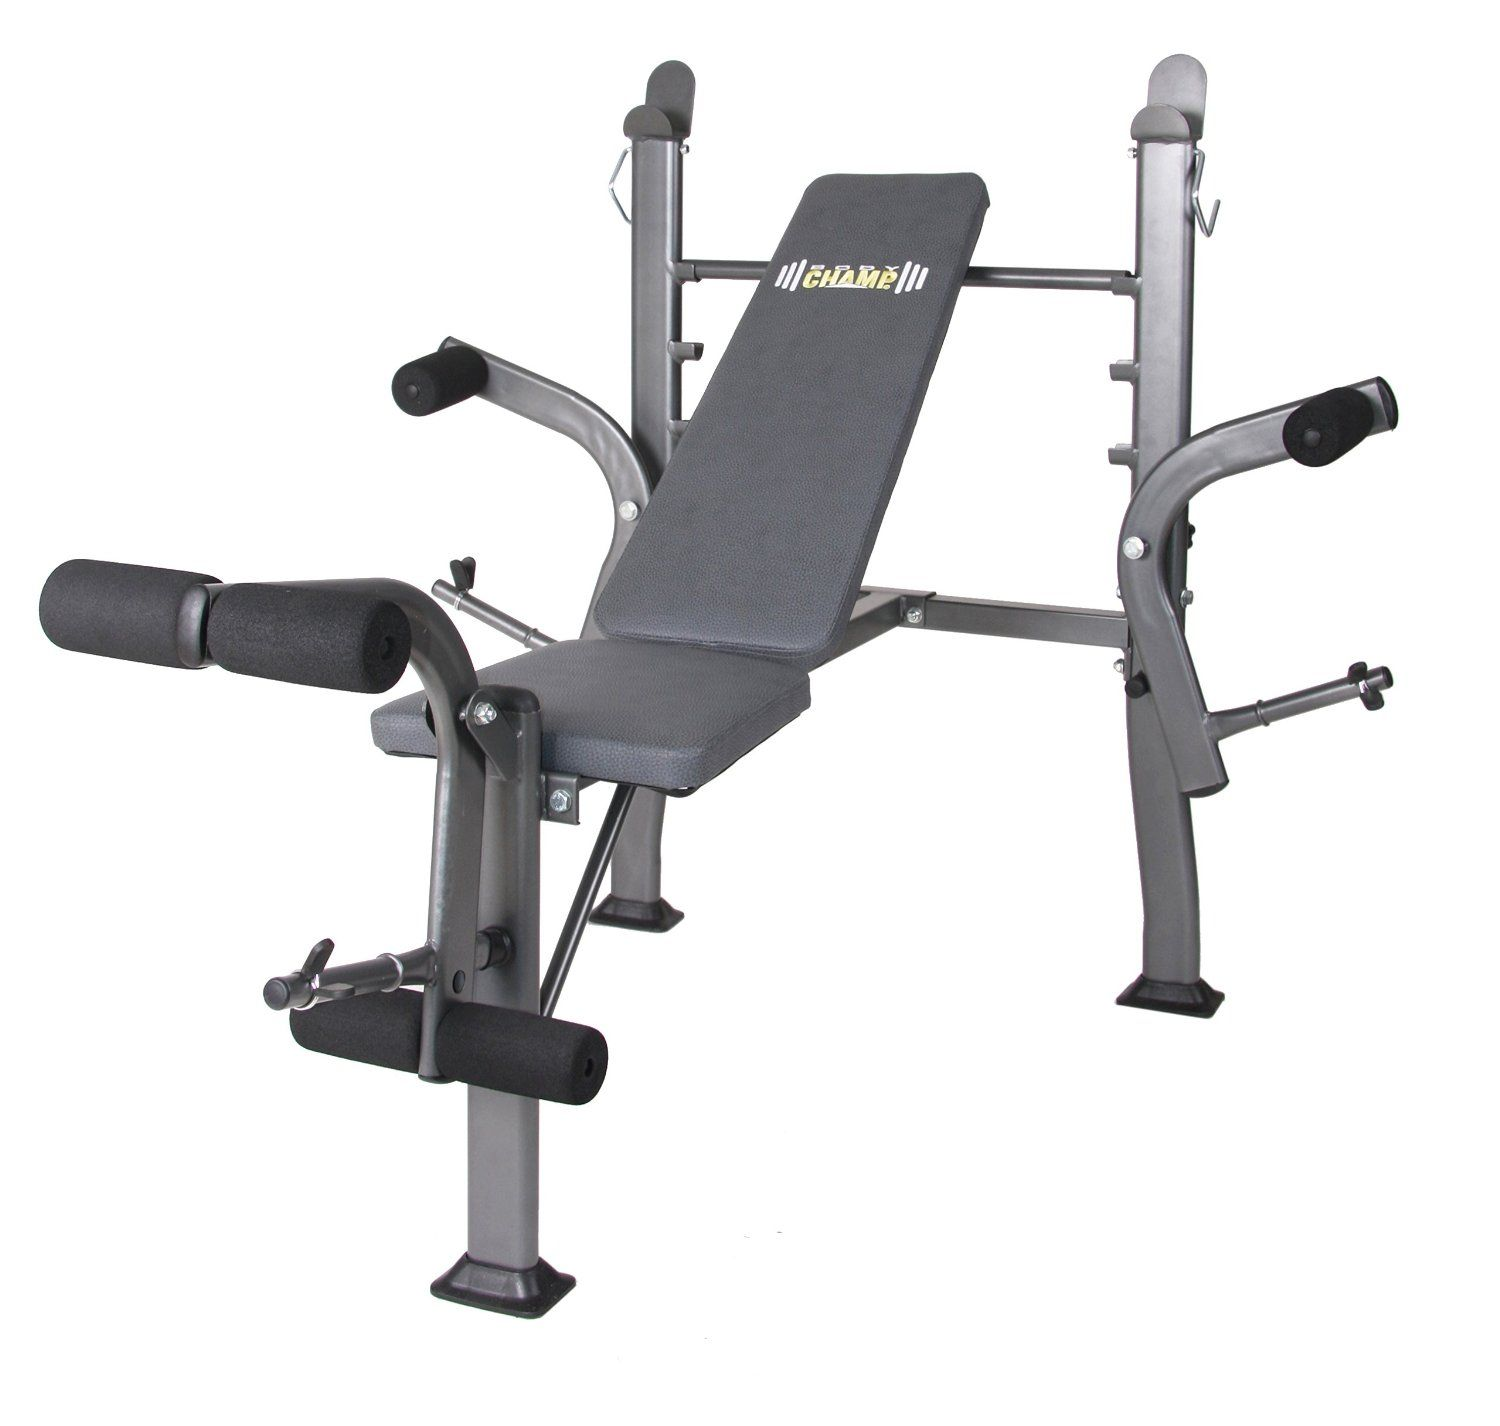 Simulator Body Champ Olympic Weight Bench Weight Benches Olympic Weights At Home Gym